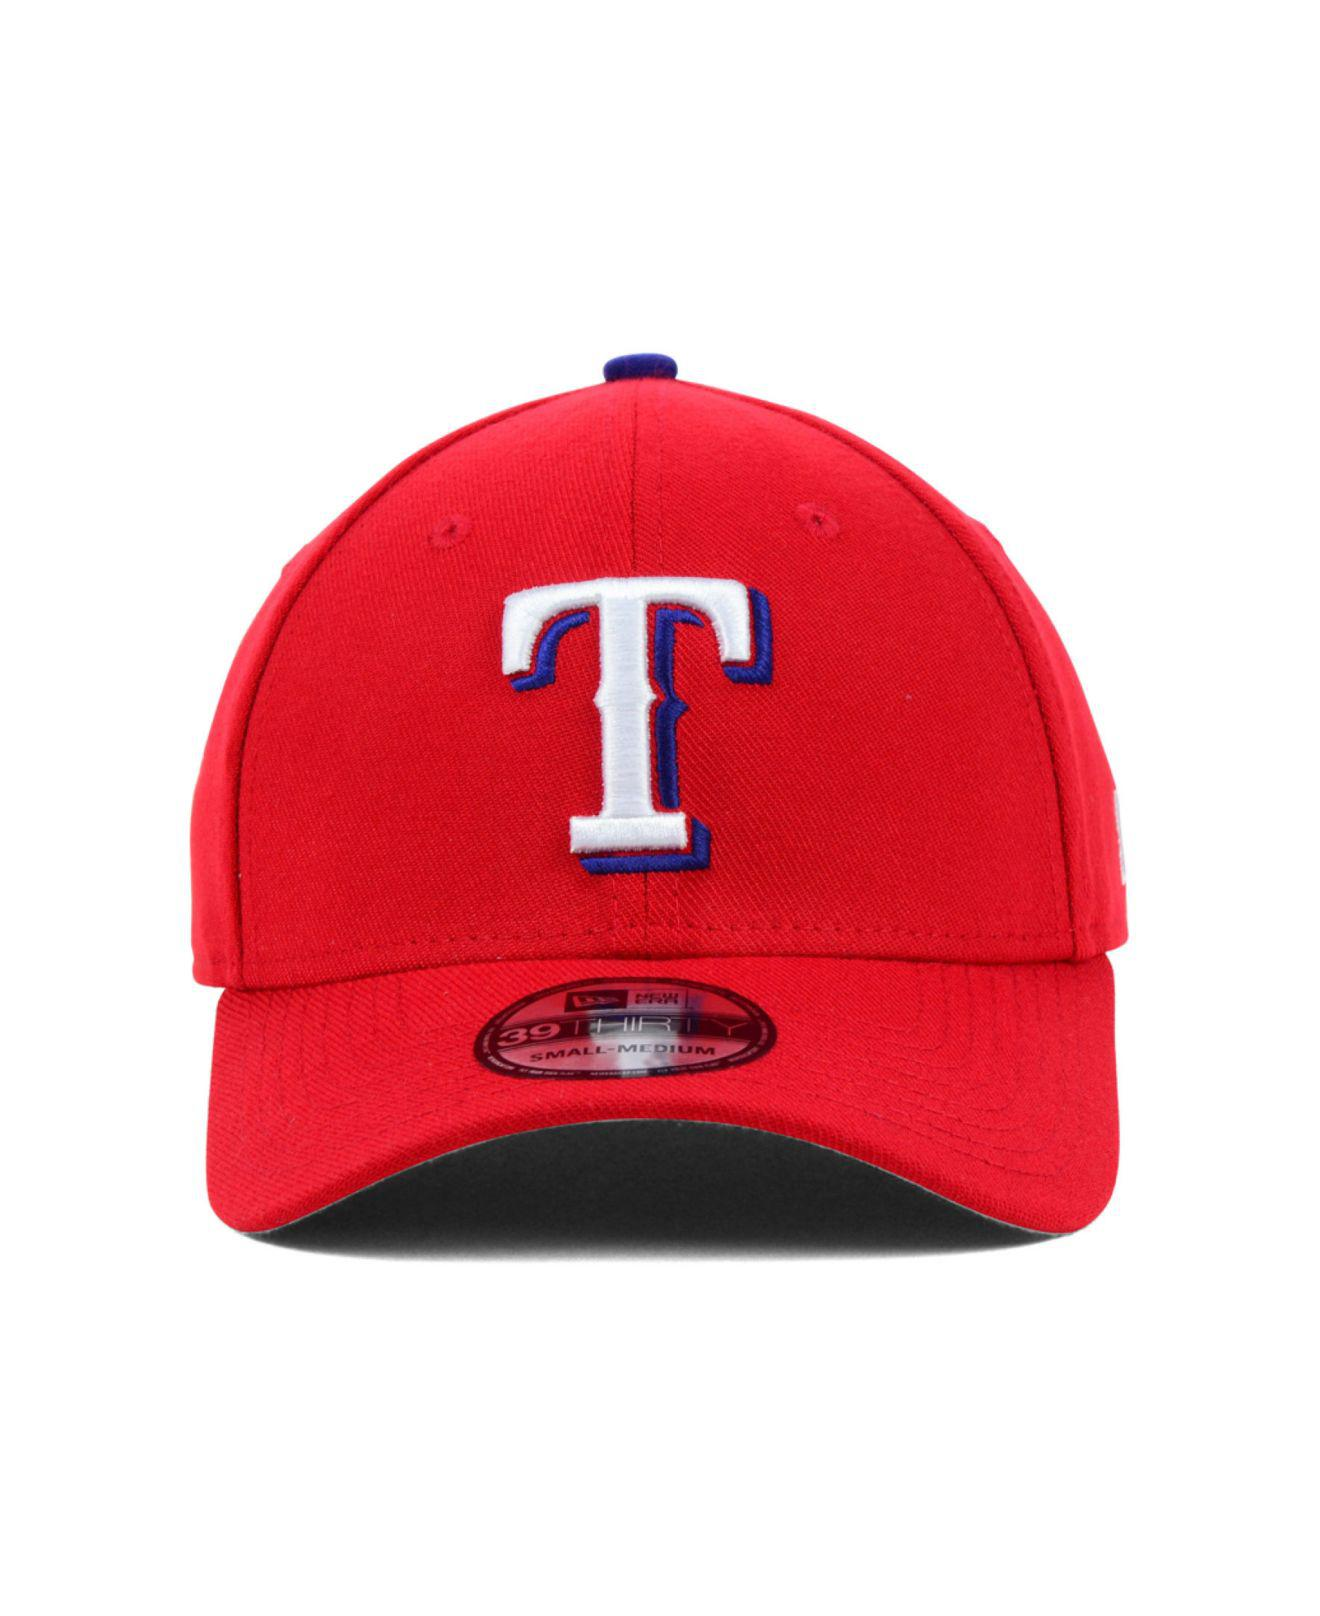 Lyst - KTZ Texas Rangers Mlb Team Classic 39thirty Cap in Red for Men 38956944b1c5